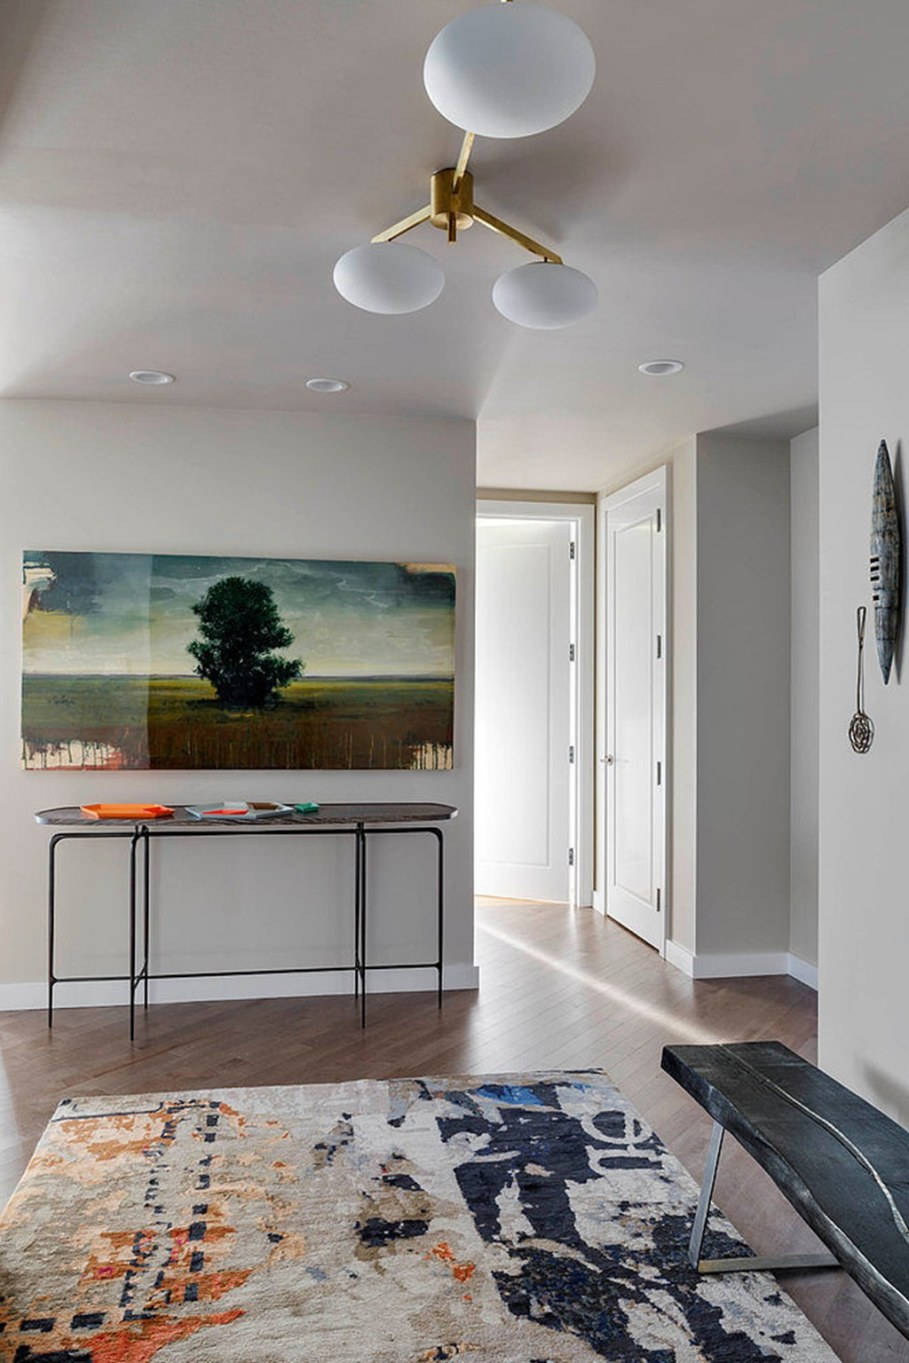 Modern apartment with three bedrooms decorated in eclectic style - The picture with path heading out far away provides additional space extension